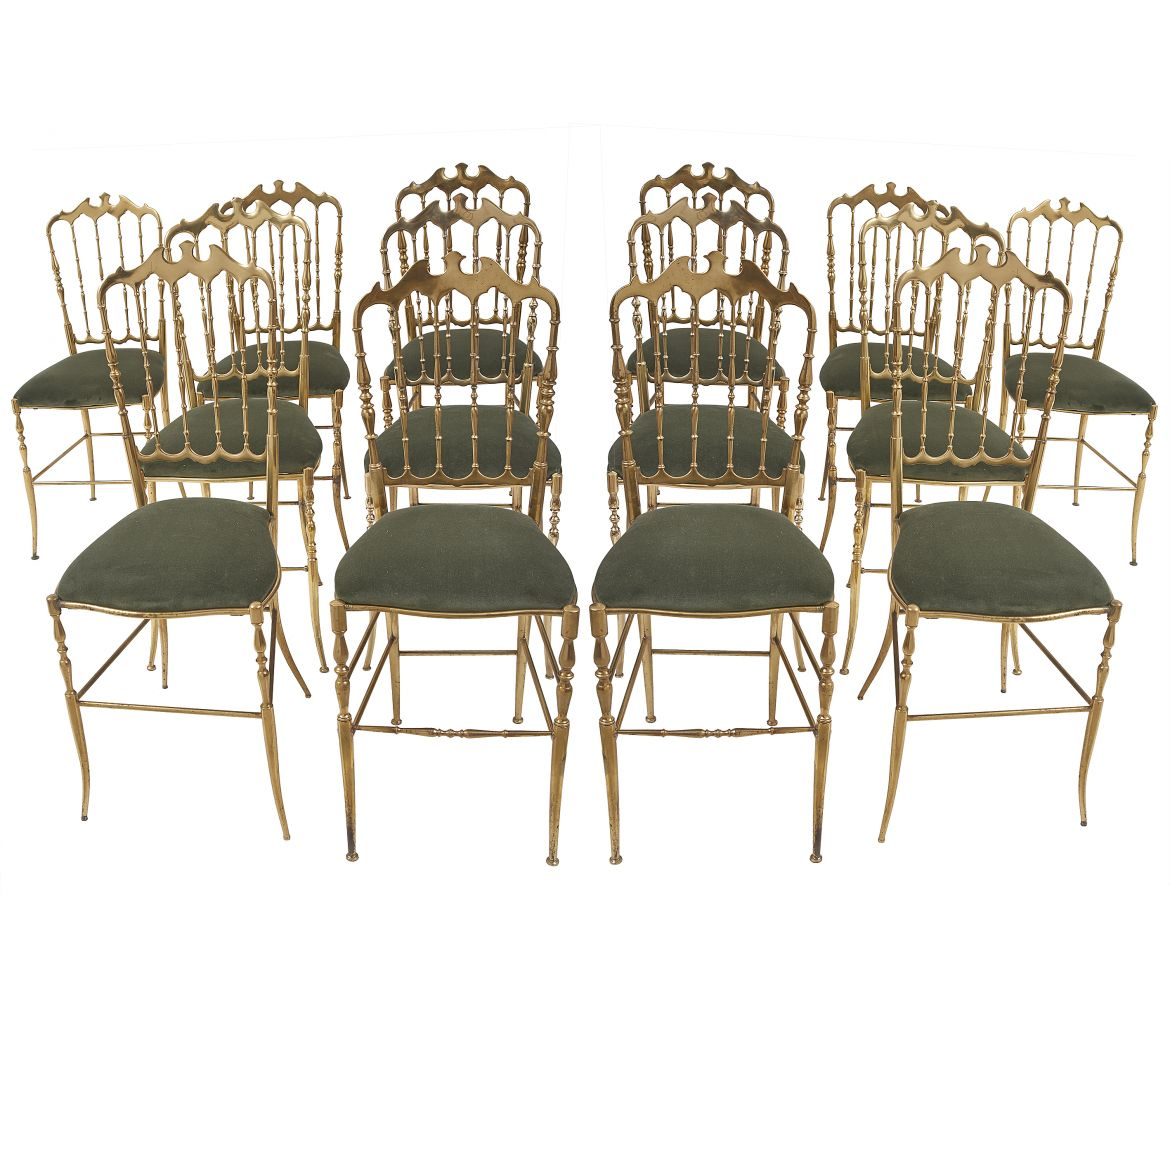 Fourteen Matched Chiavari Dining Chairs